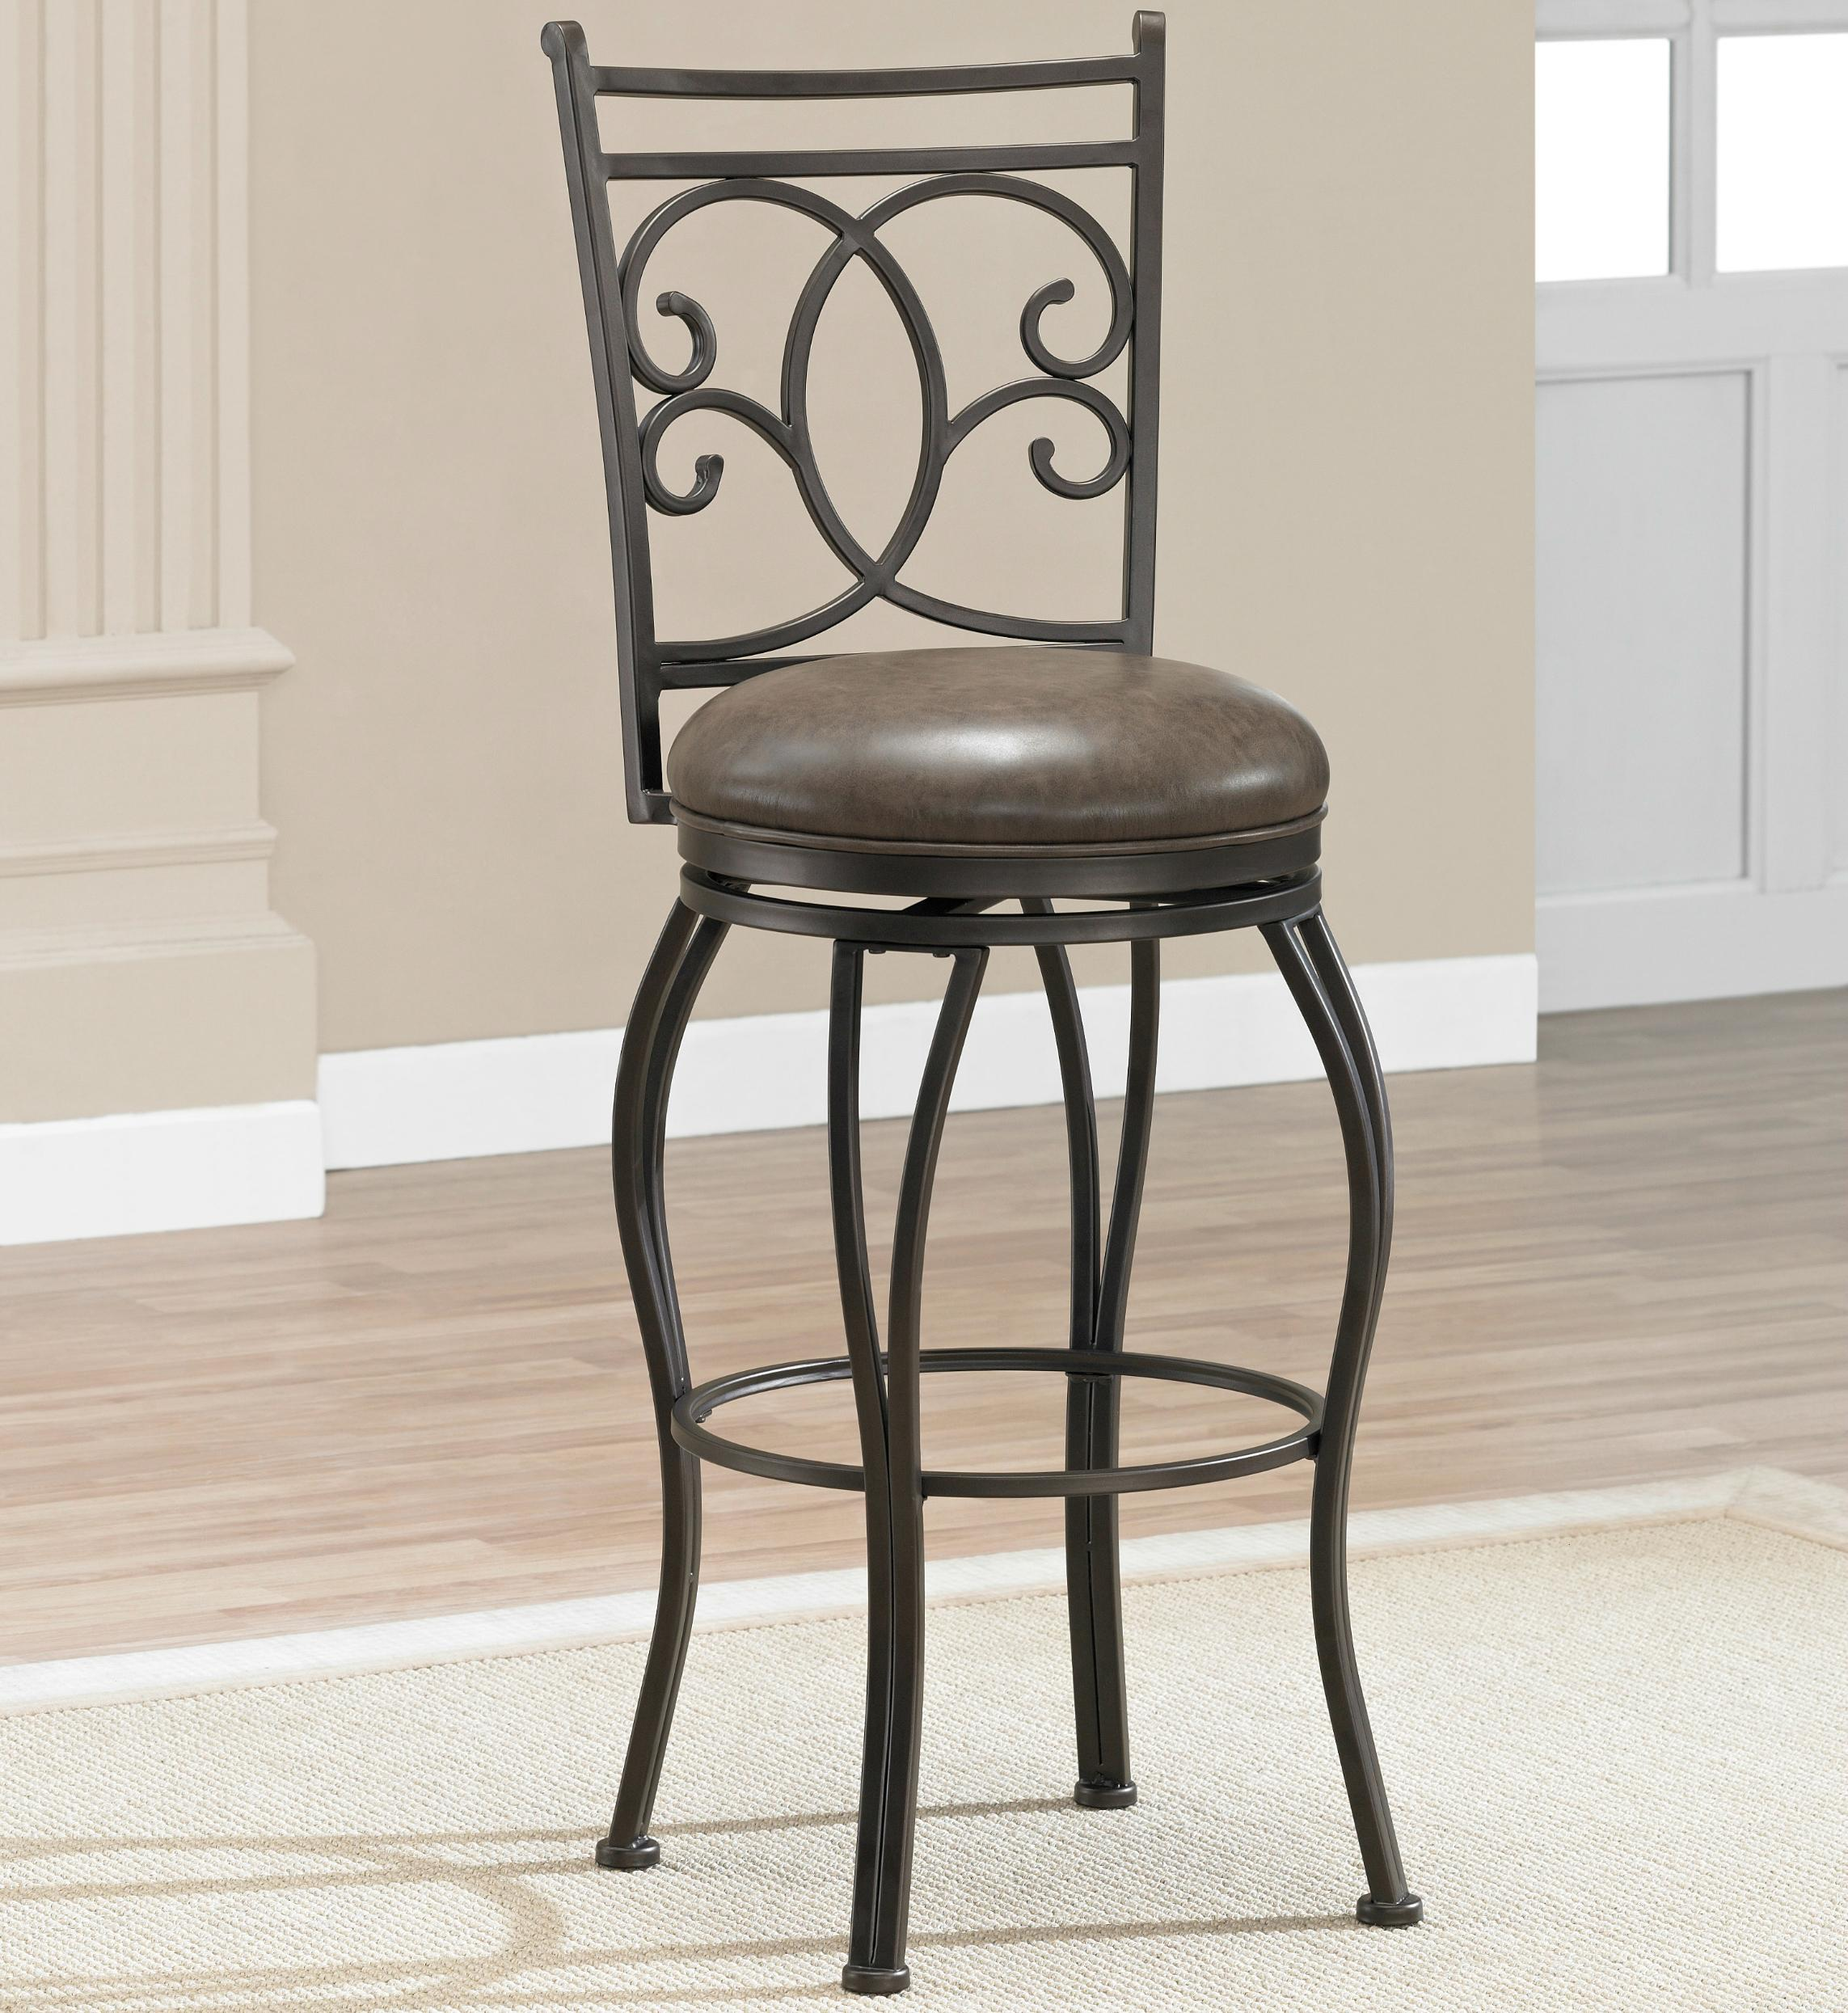 "American Heritage Billiards Bar Stools 26"" Nadia Bar Stool - Item Number: 126928COC"